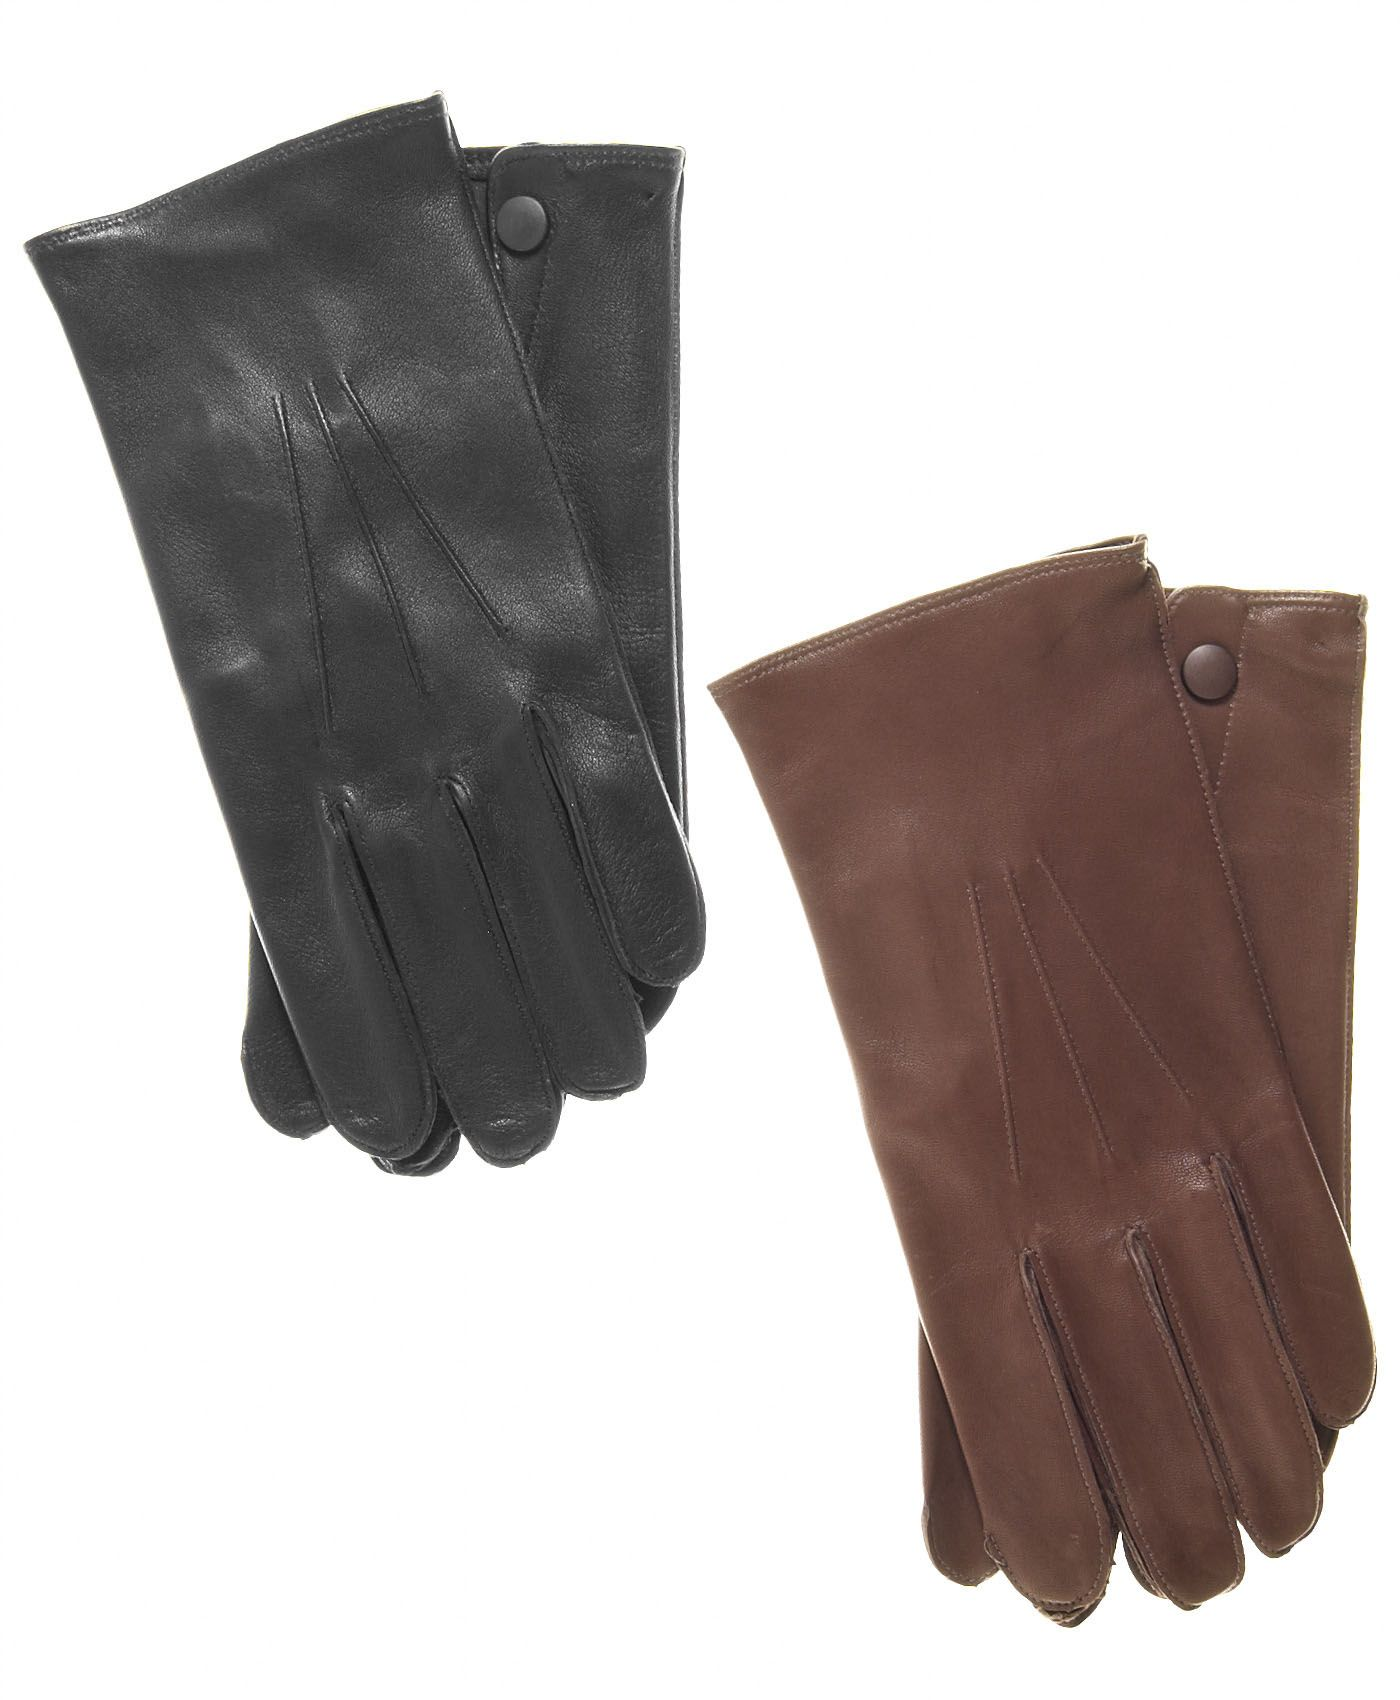 Radley ladies leather gloves - Rcmp Men S Dress Leather Gloves By Raber Gloves Free Usa Shipping Pinterest Beautiful Leather And The Back